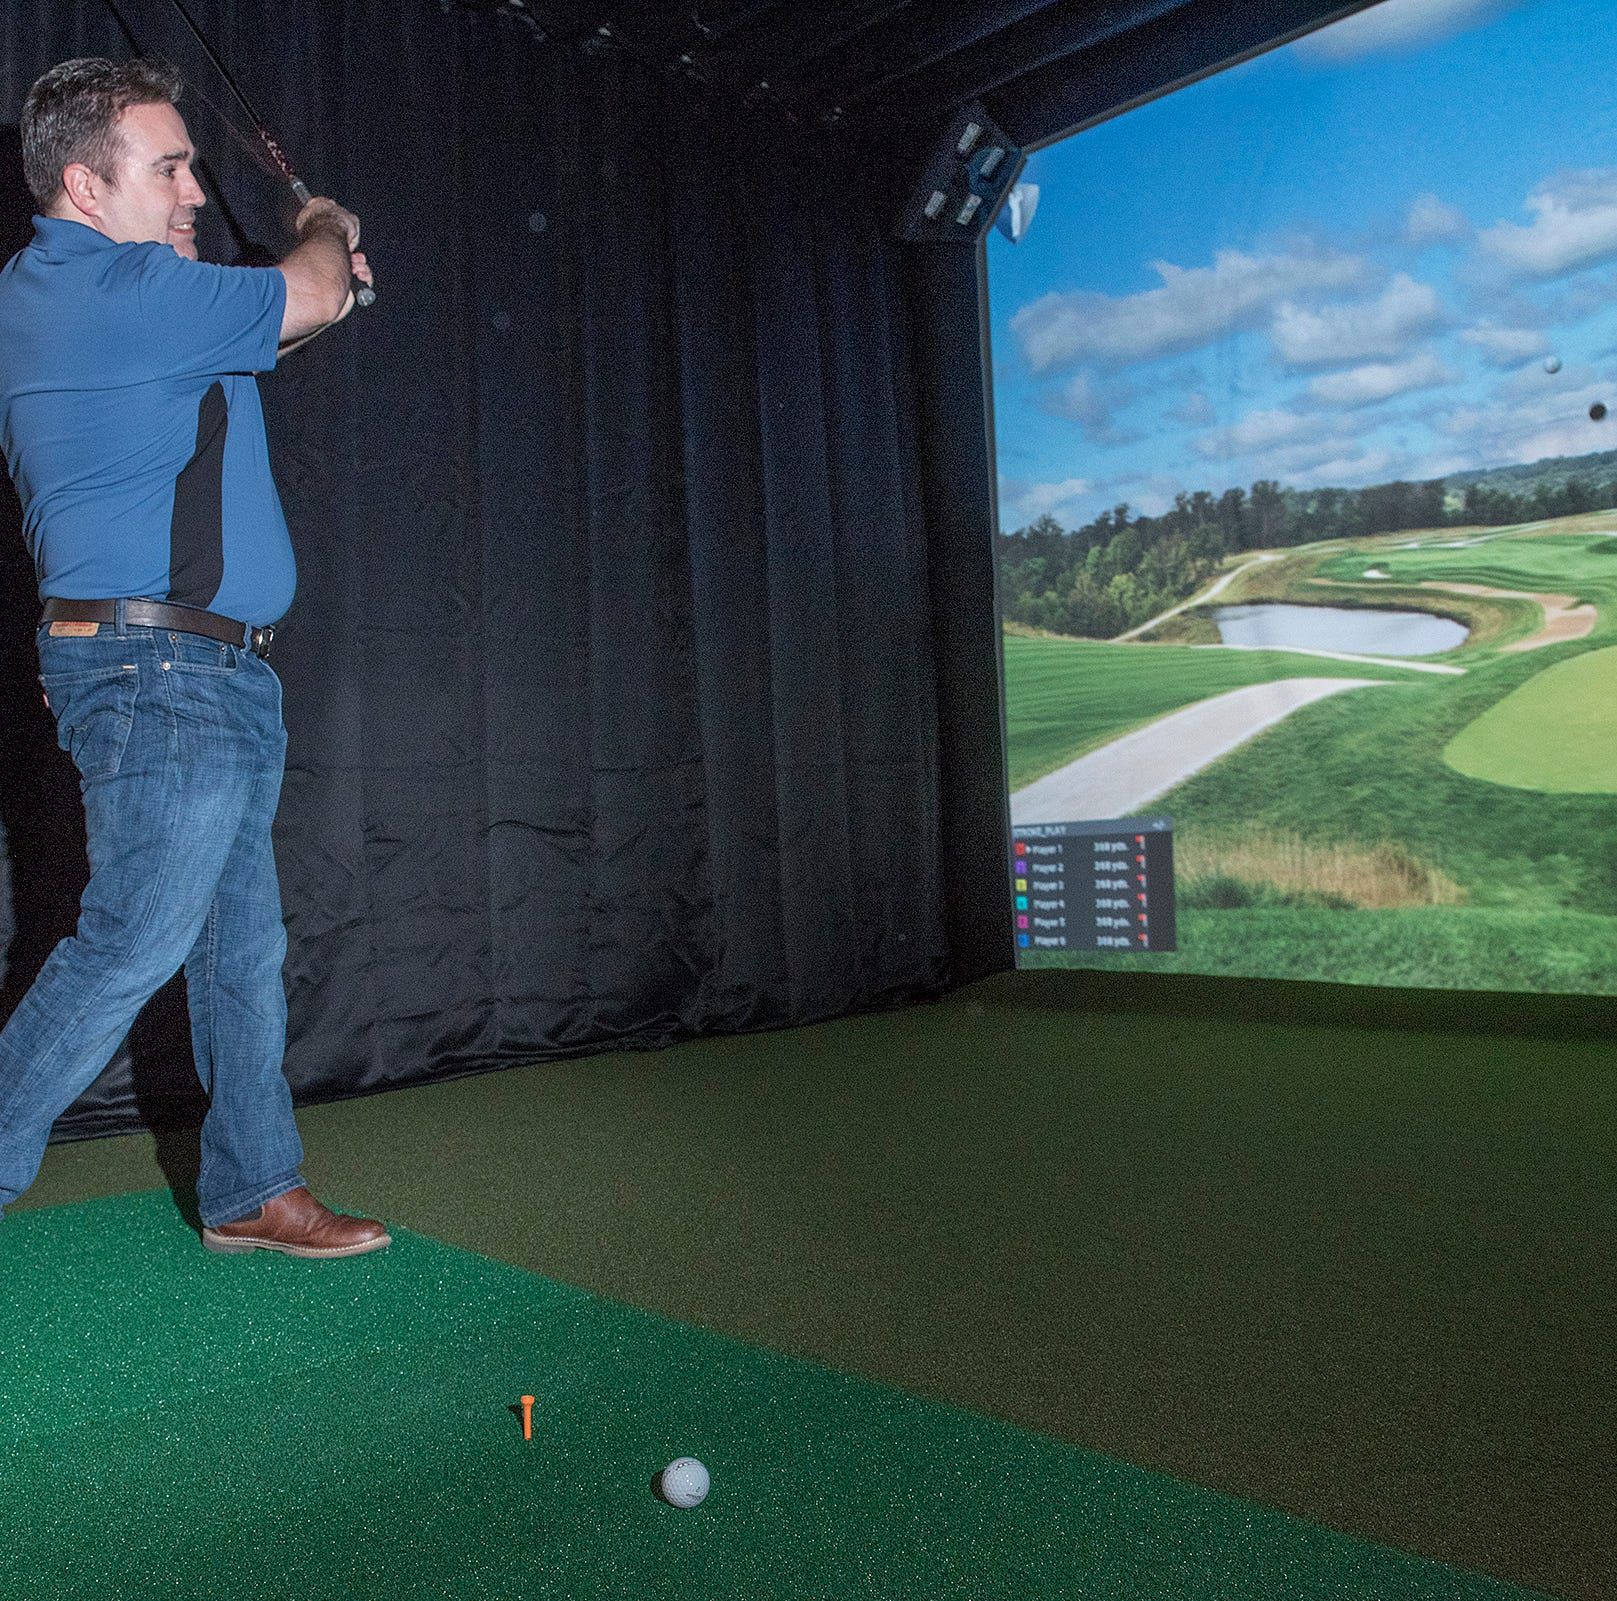 Livonia business combines love of golf, poker in one place